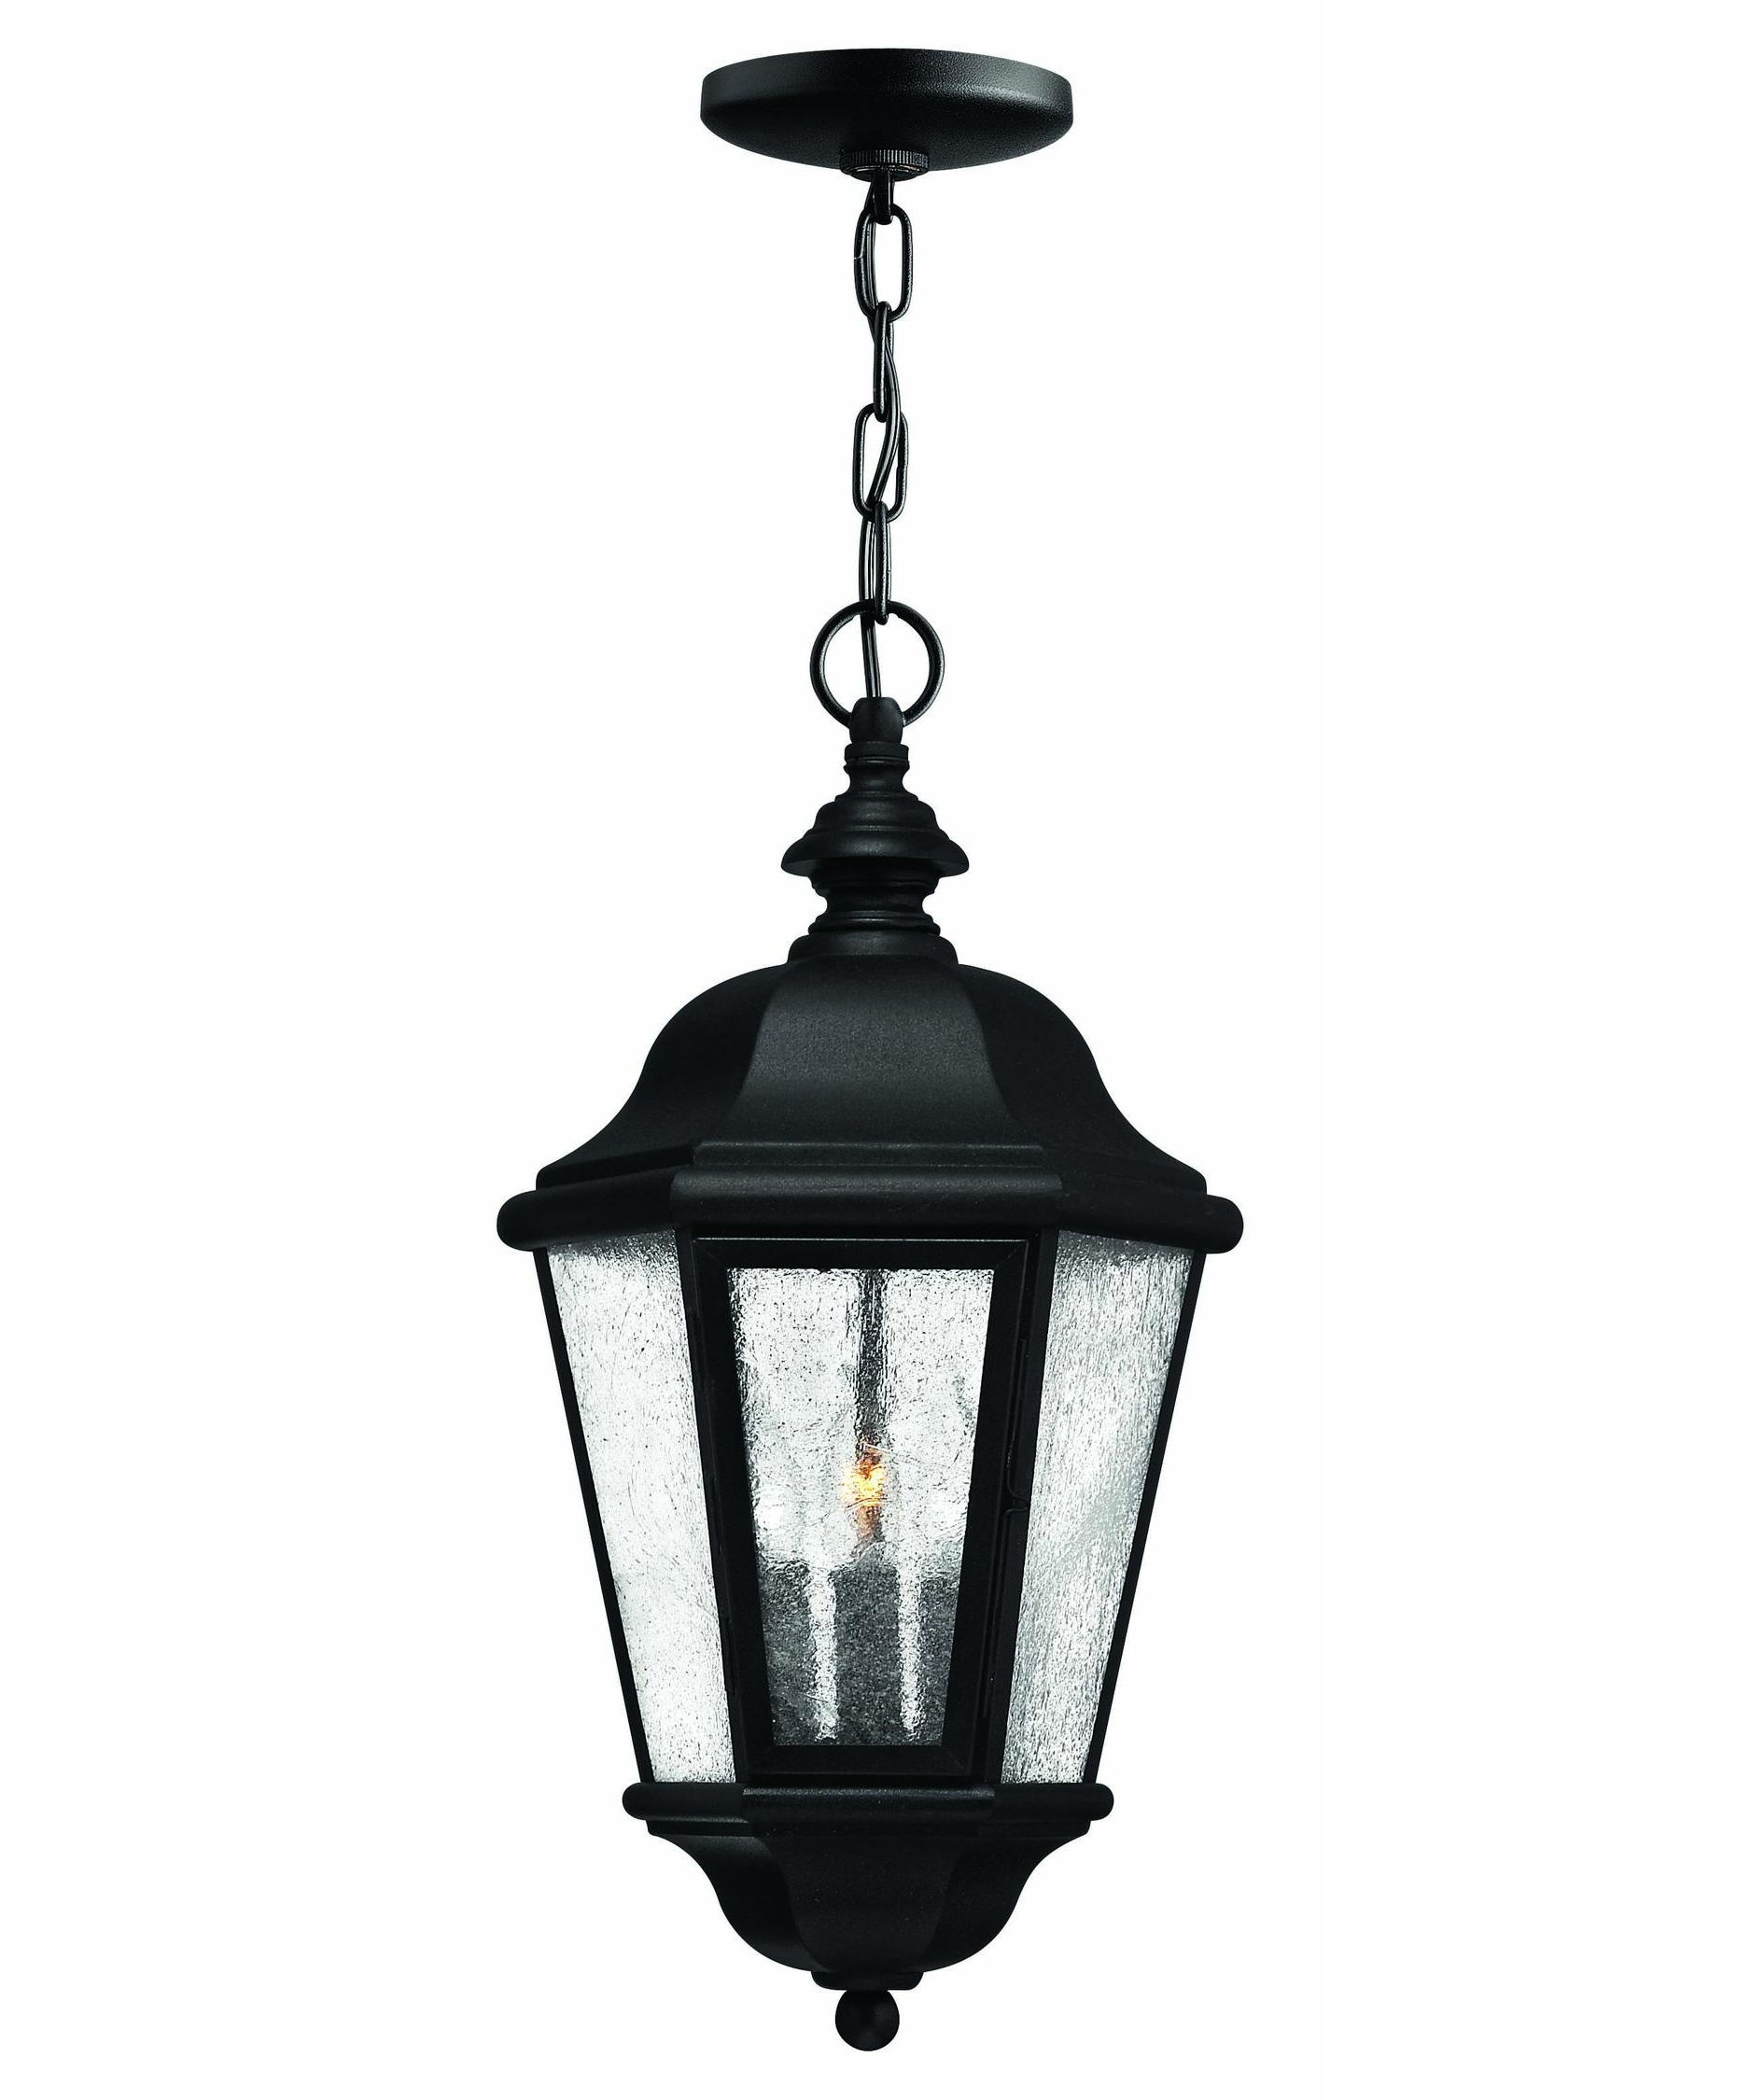 Famous Hinkley Lighting 1672 Edgewater 10 Inch Wide 3 Light Outdoor Hanging Regarding Modern Latern Hinkley Lighting (View 5 of 20)